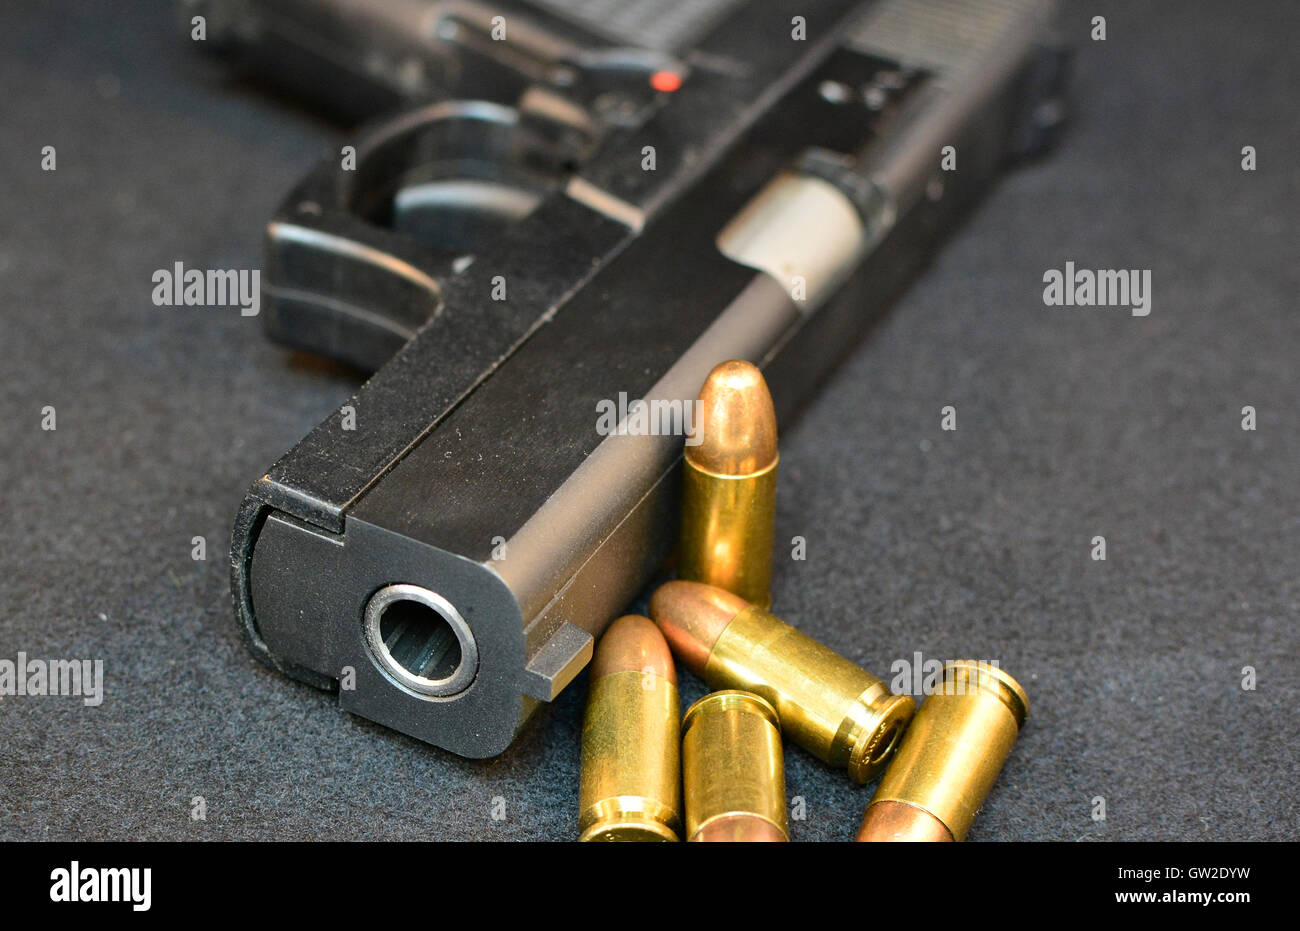 Handgun with bullets. Gun violent crime, assault. Shooting. Gun use. - Stock Image